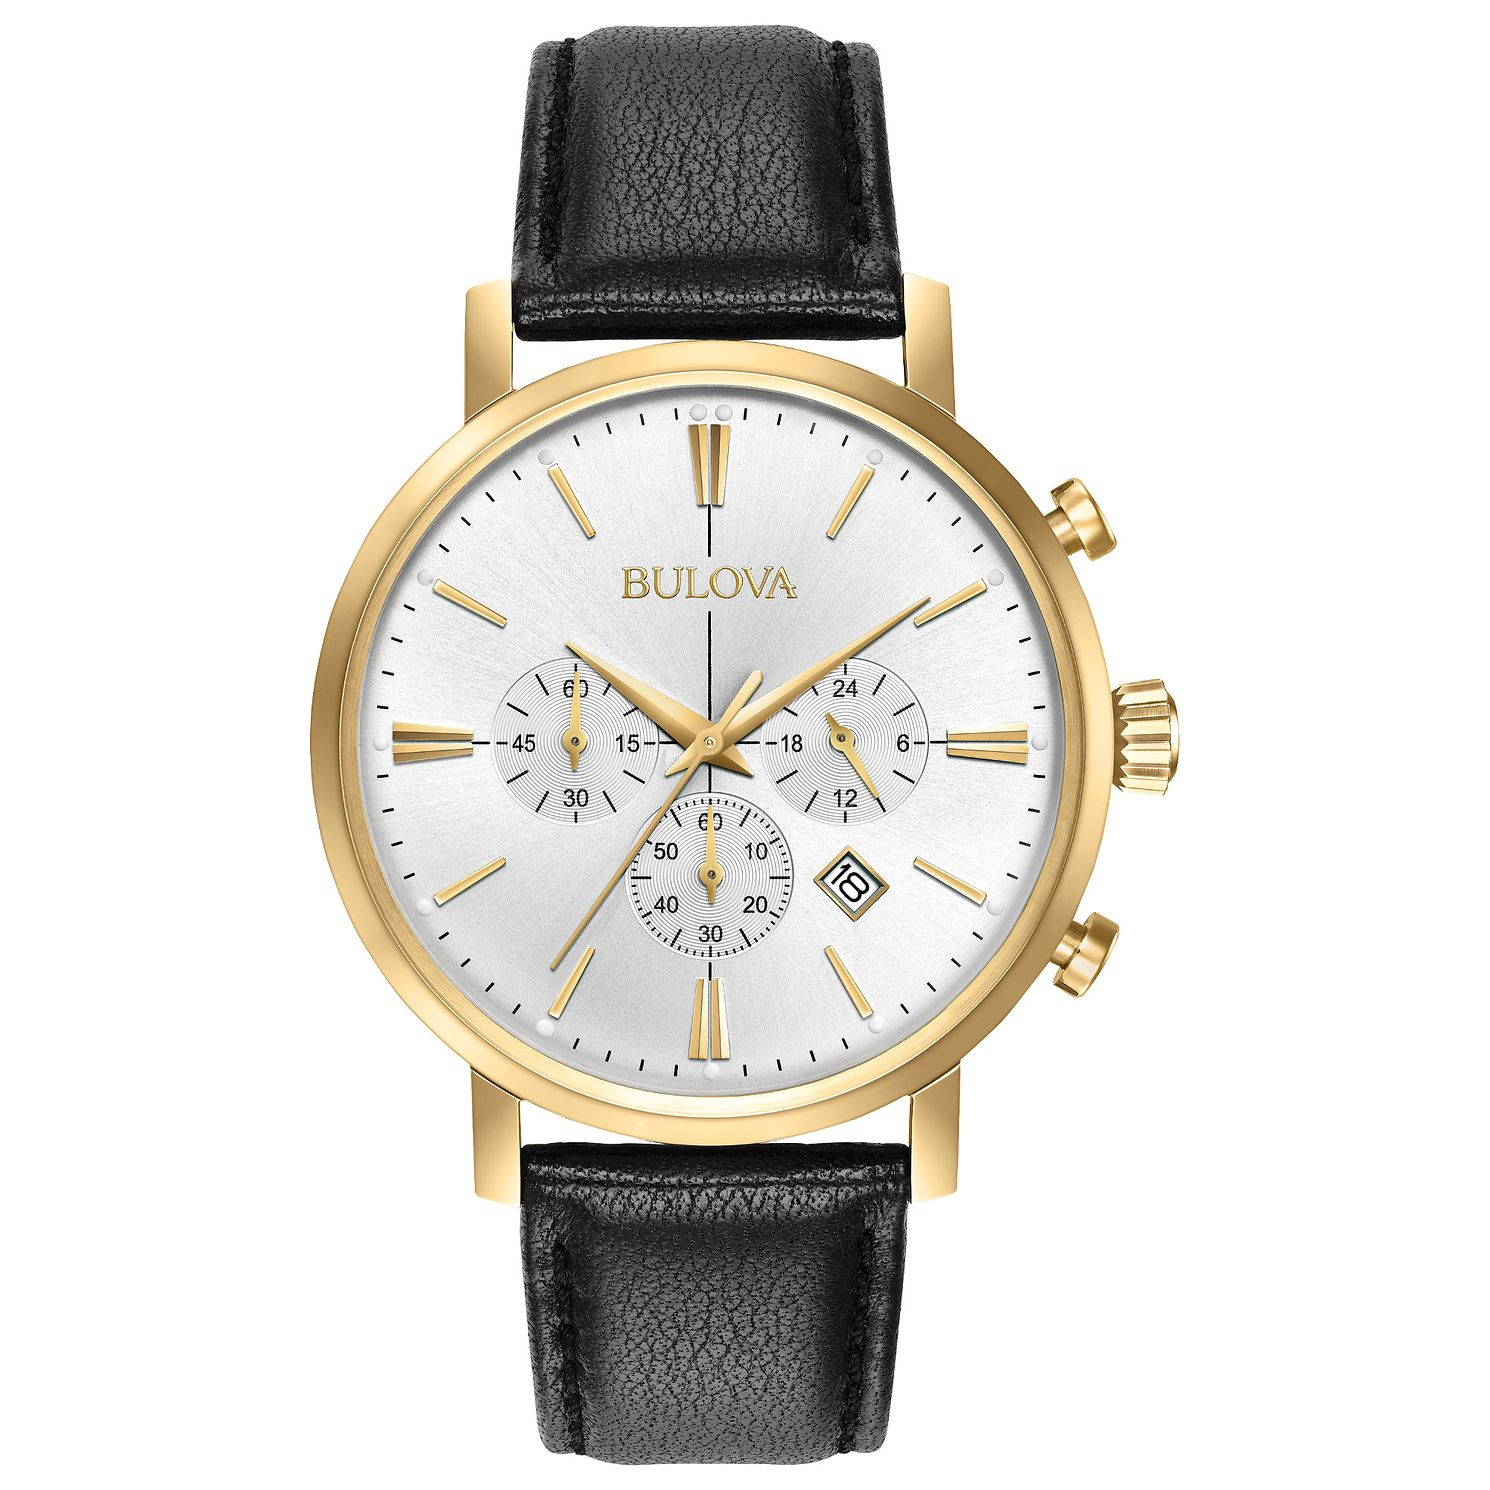 Bulova Classic Men's Black Leather Strap Watch - Product number 3432580